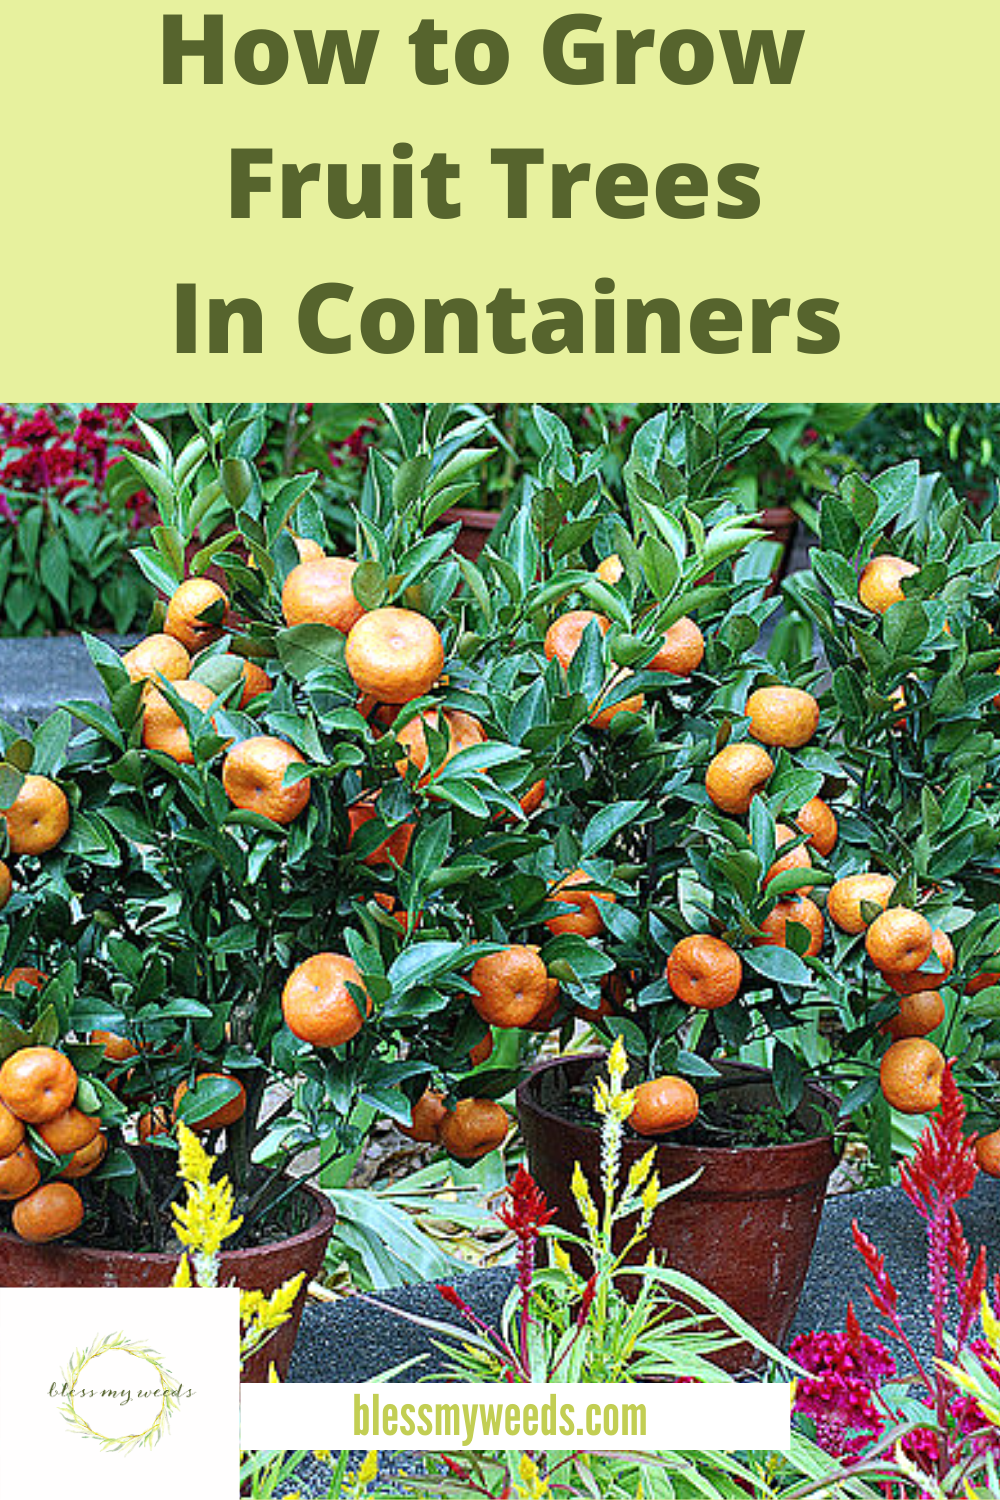 You don't need an orchard to grow fruit trees, but that would be great, too. If space is limited containers work as well. Pick your favorite container that has plenty of drainage ability, select your tree, read this post and then enjoy the fruits of your labor. #howtogrowfruittreesincontainers #containergardening #blessmyweedsblog